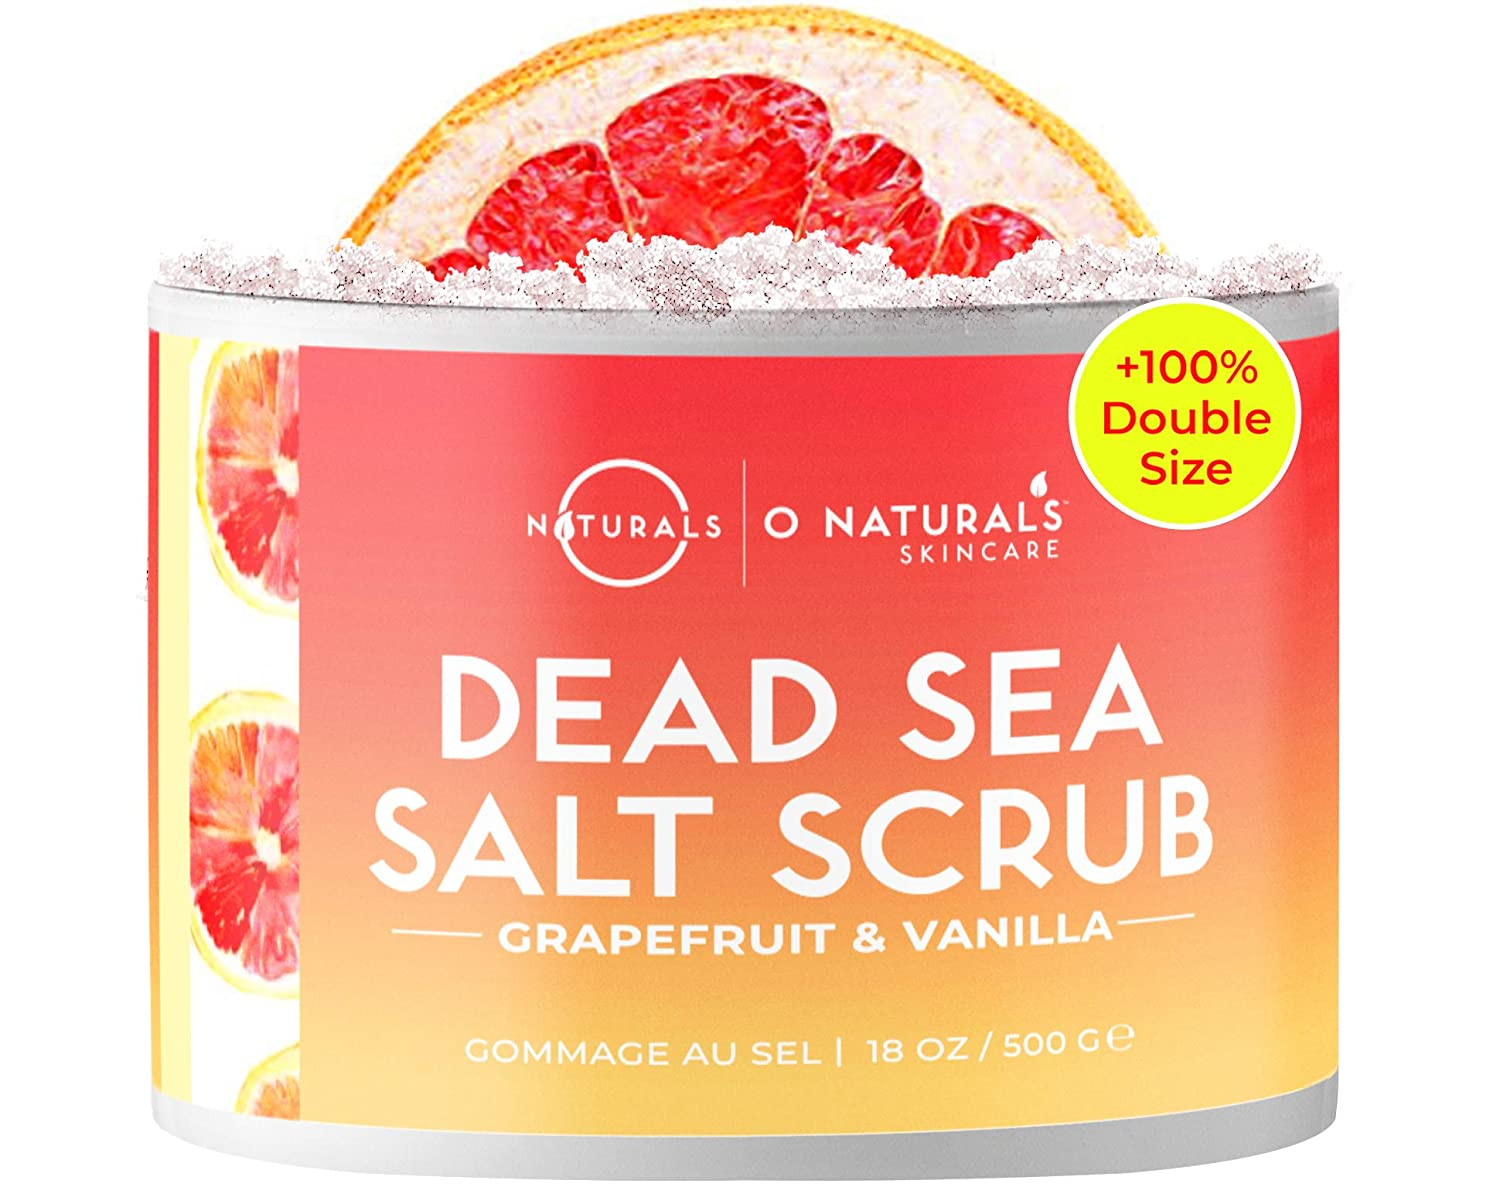 O Naturals Exfoliating Dead Sea Salt Grapefruit Essential Oil Face Body & Foot Scrub. w/Vanilla &. Hydrating Exfoliate Dead Skin, Best Anti Cellulite Acne Ingrown Hairs Corns, Men & Women Scrub 18oz